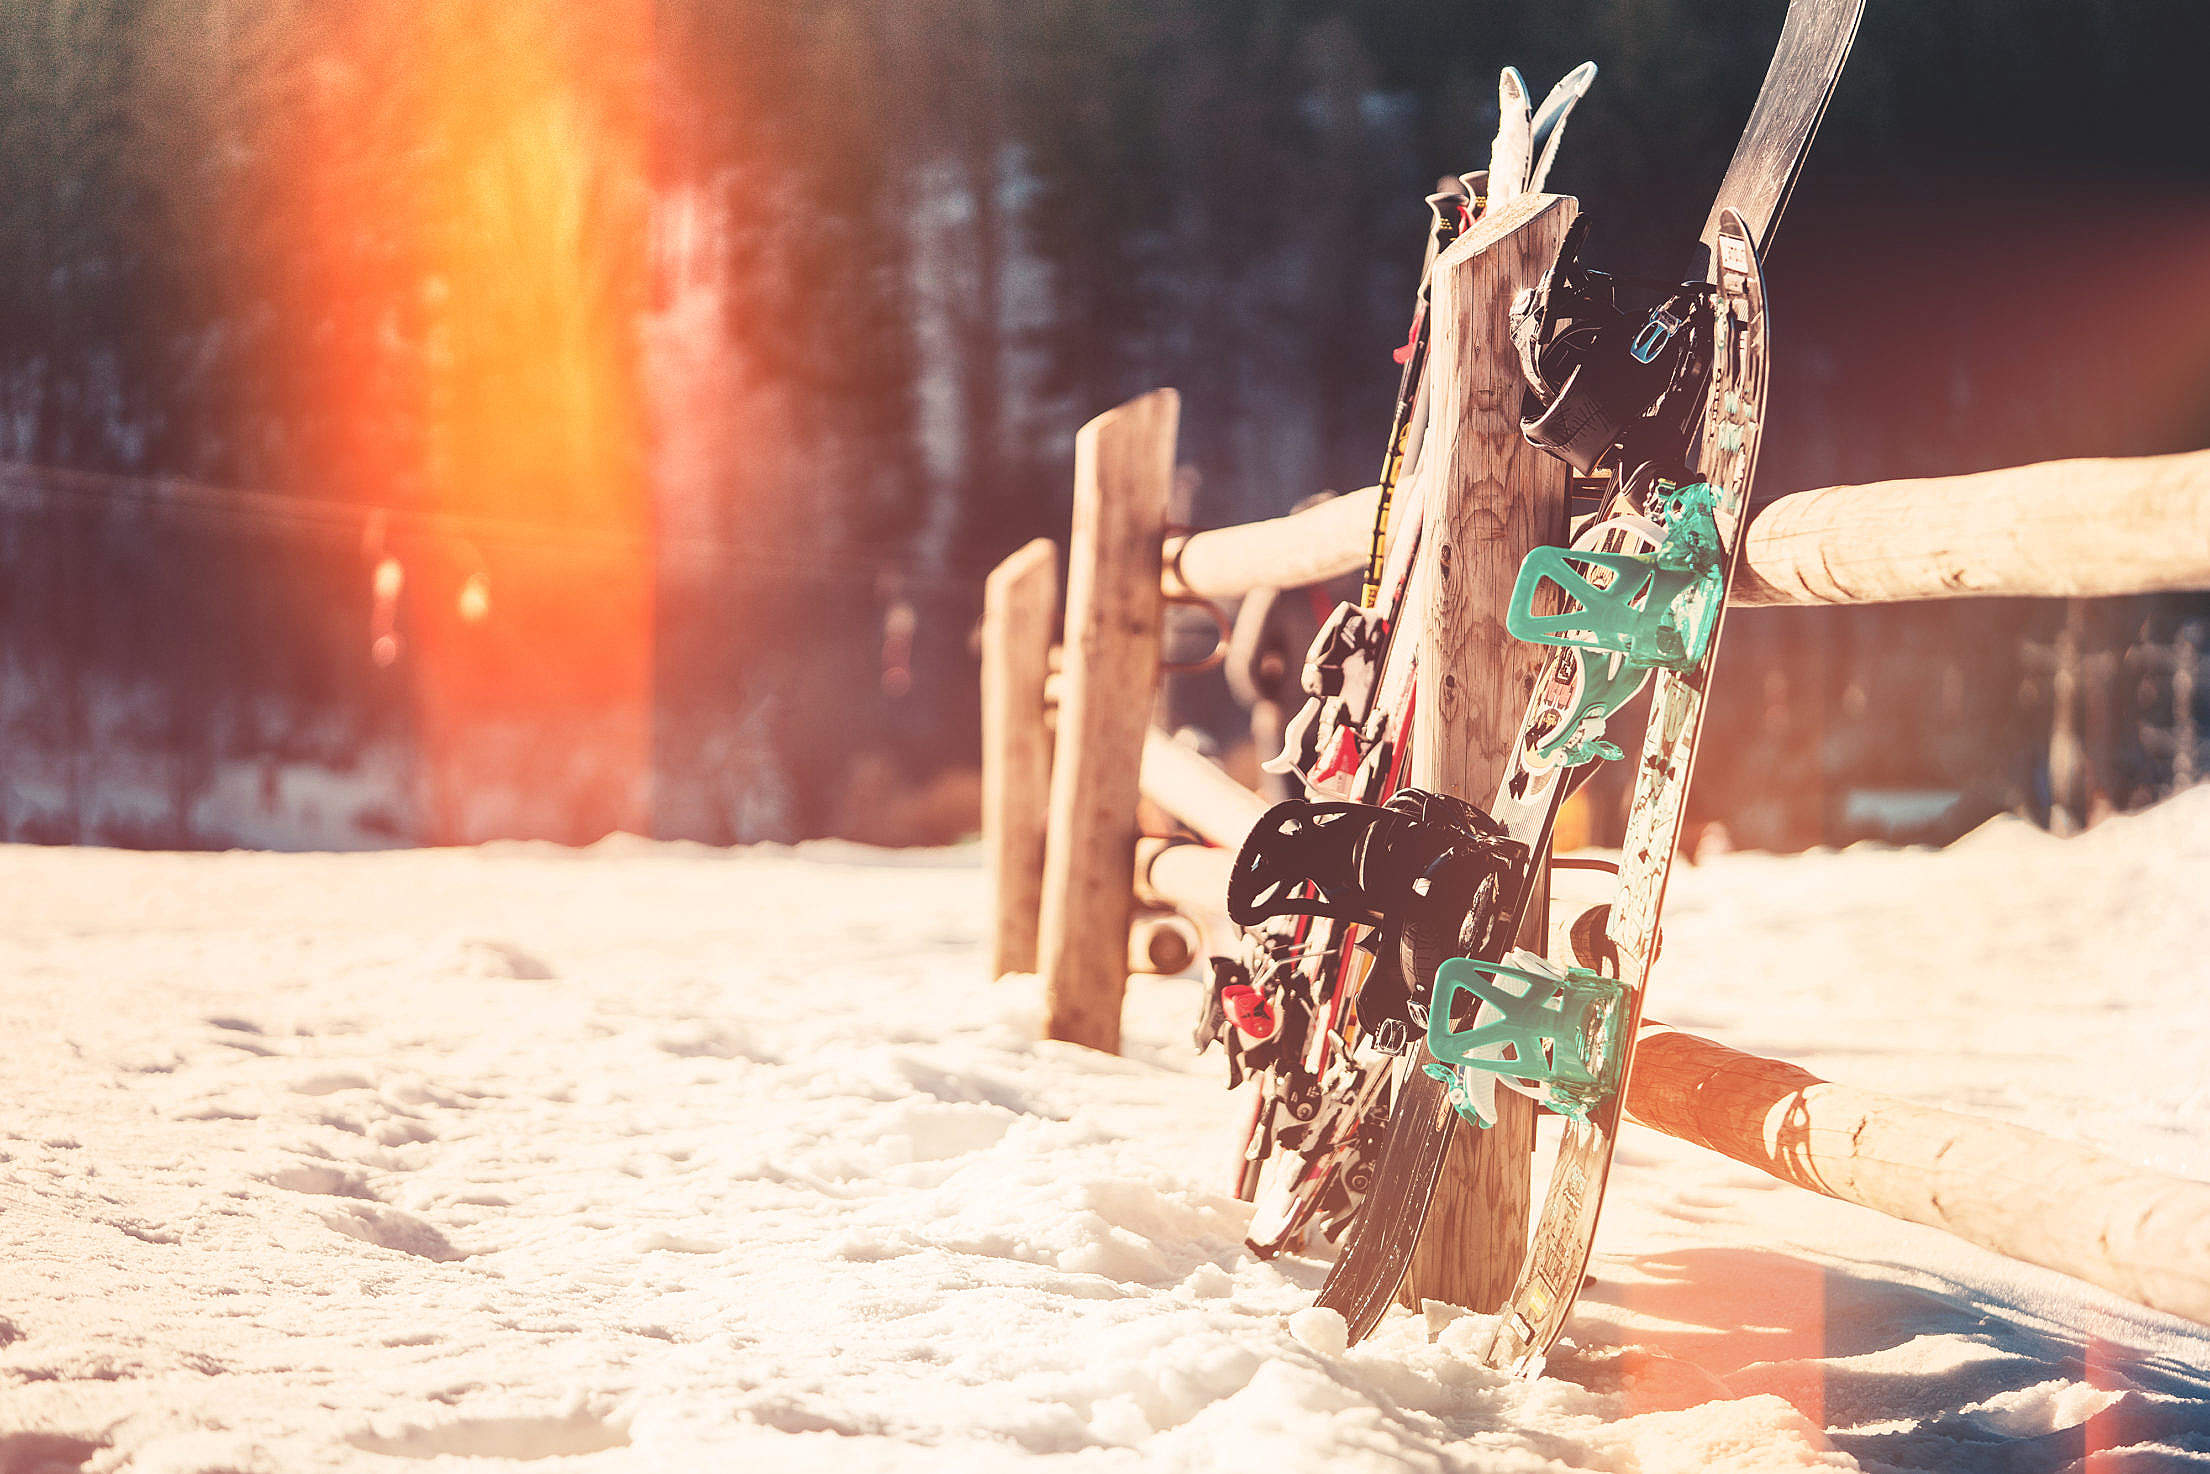 Snowboards and Skis Leaning Against Wooden Fence Free Stock Photo